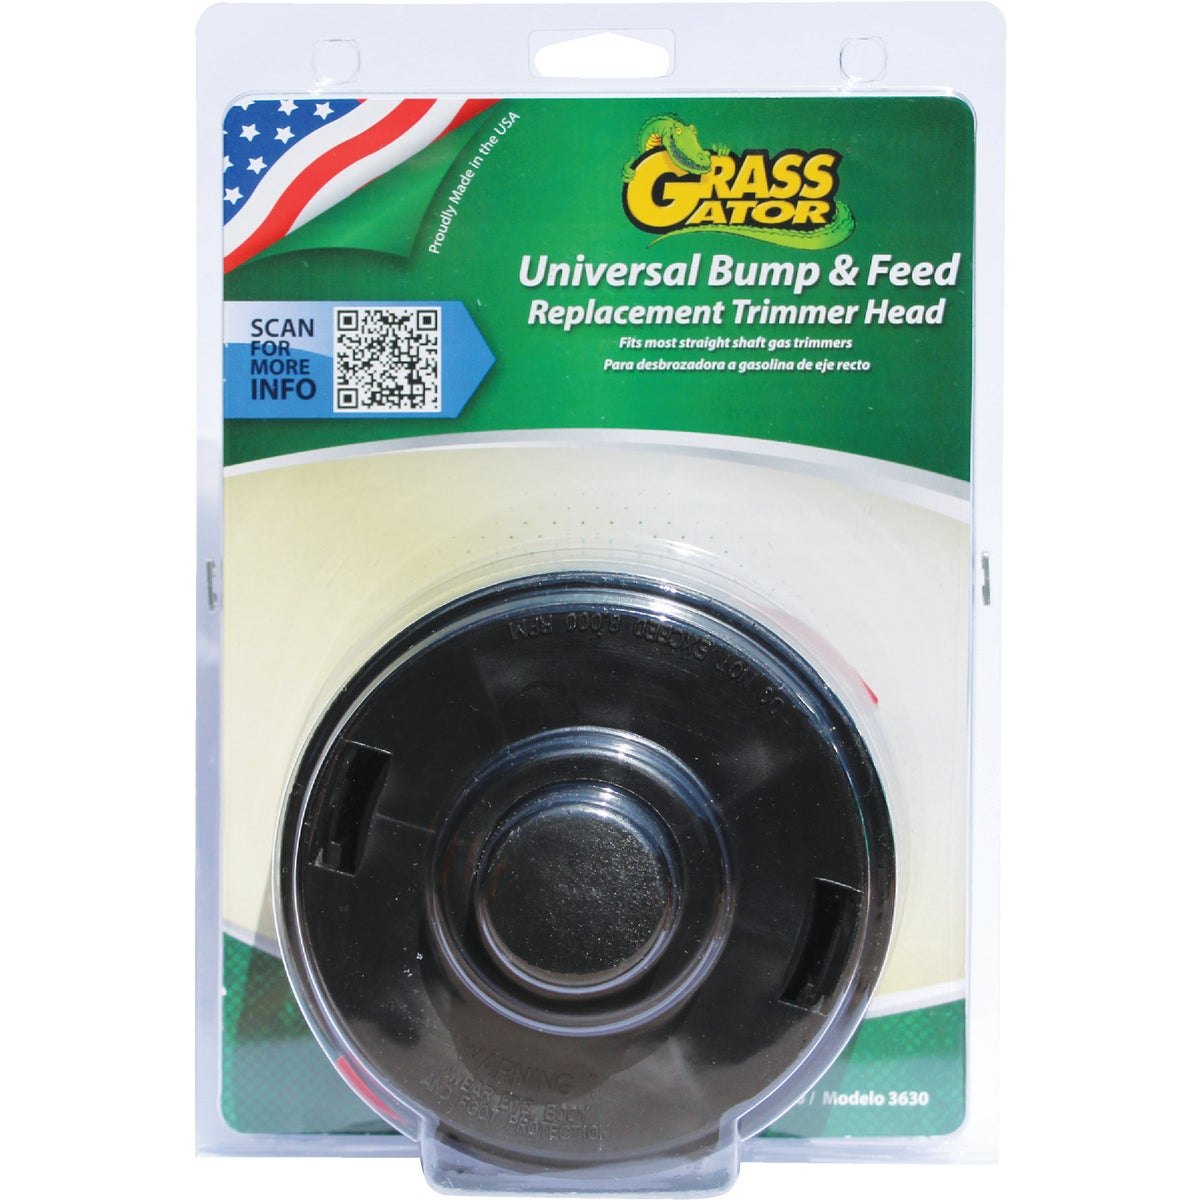 BUMP + FEED TRIMMER HEAD - 3630 by C M D Products